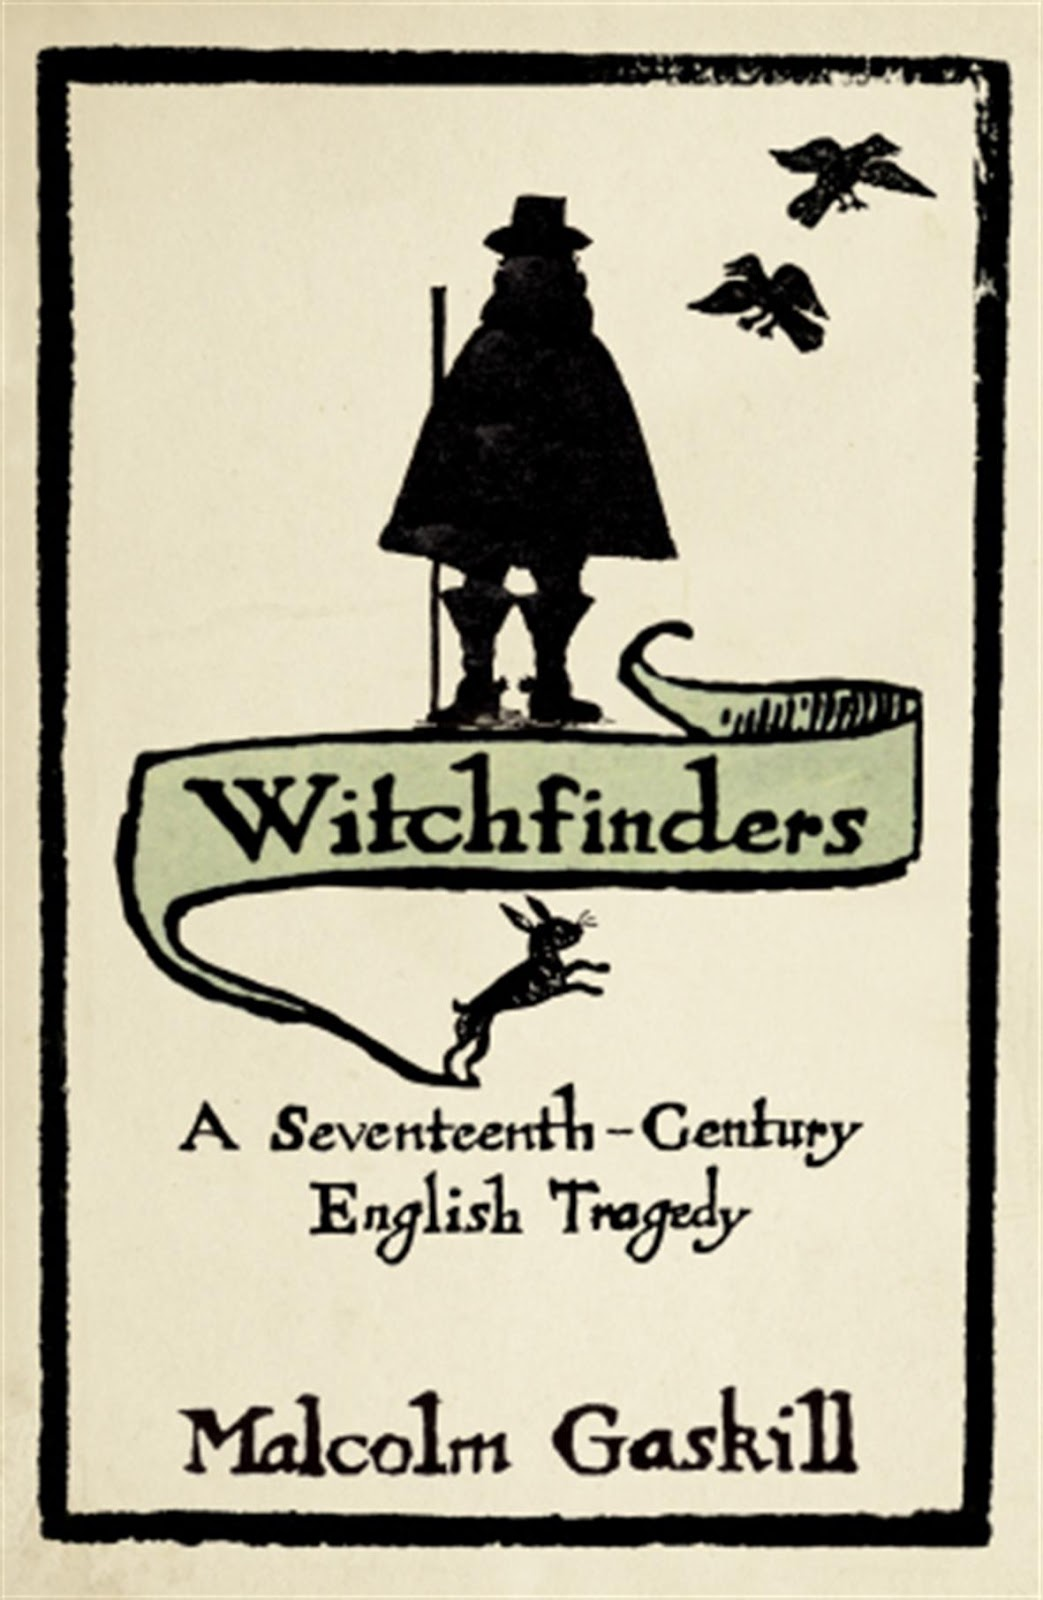 witchcraft in the 17th century essay Lauren feria witchcraft in the 17th century origins and total numbers began in the 1500s during the reign of queen elizabeth i it spread from.